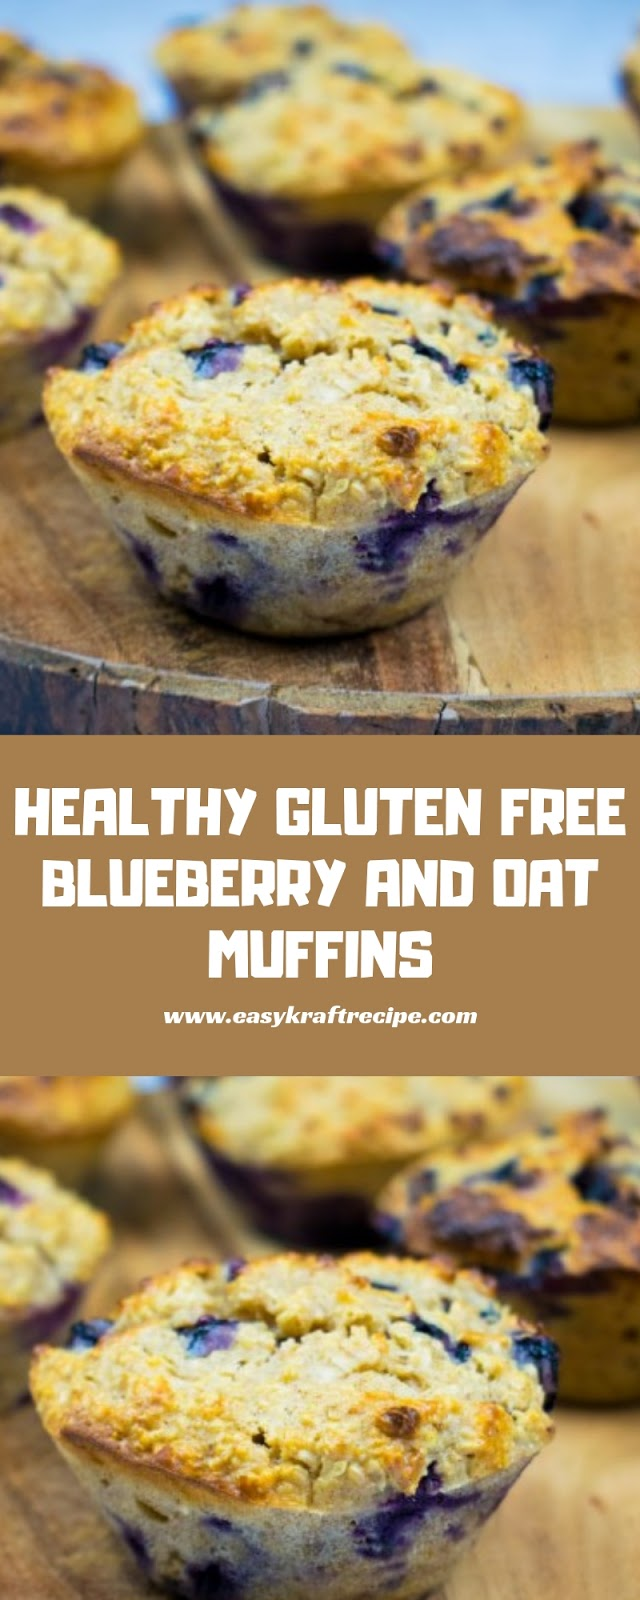 HEALTHY GLUTEN FREE BLUEBERRY AND OAT MUFFINS